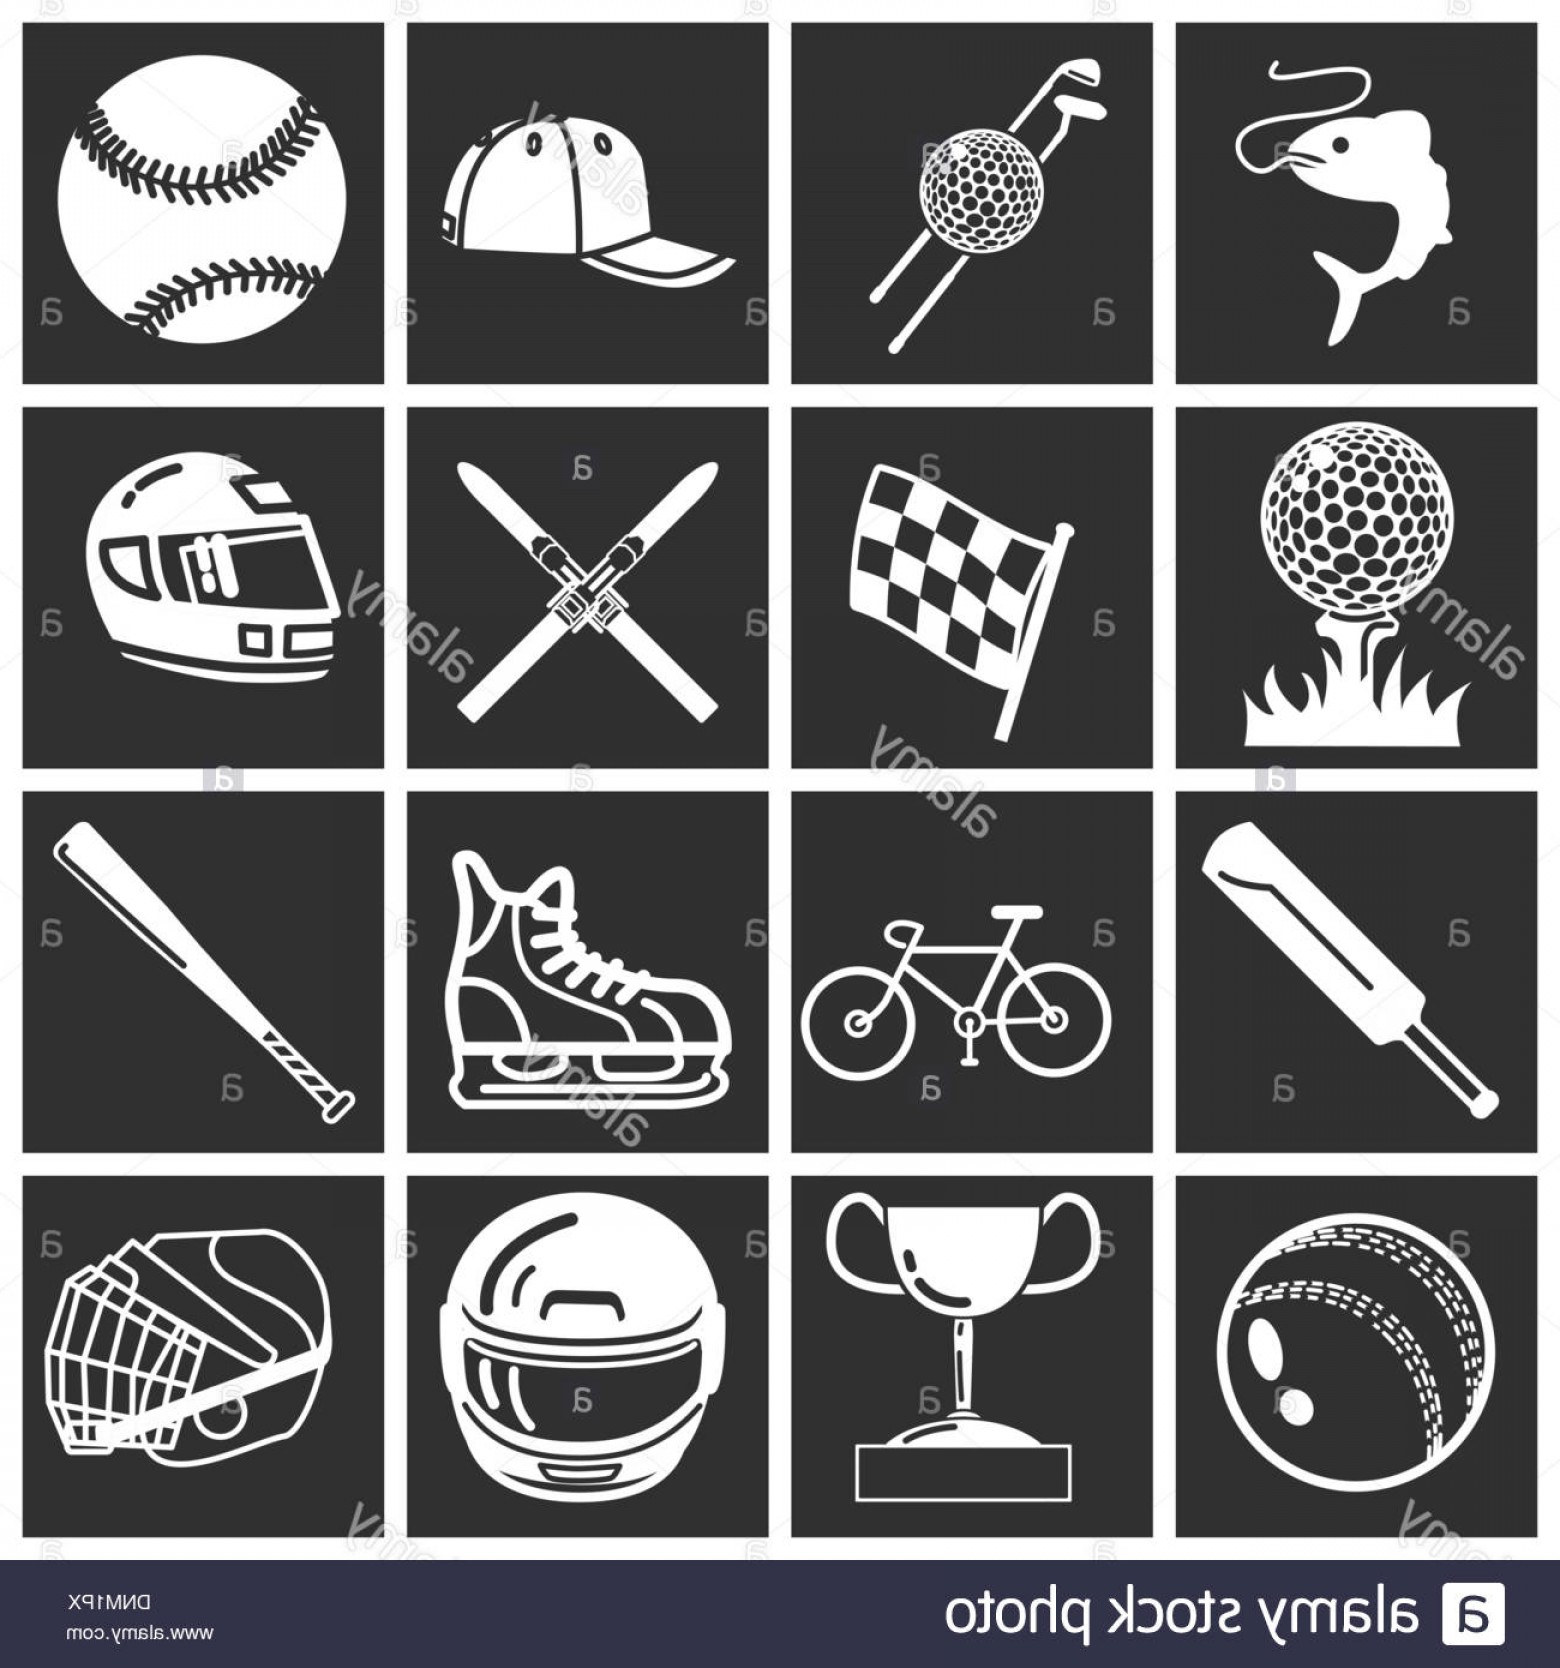 Illustrator Vector Format: Stock Photo A Set Of Sports Icons Design Elements Vector Art In Adobe Illustrator